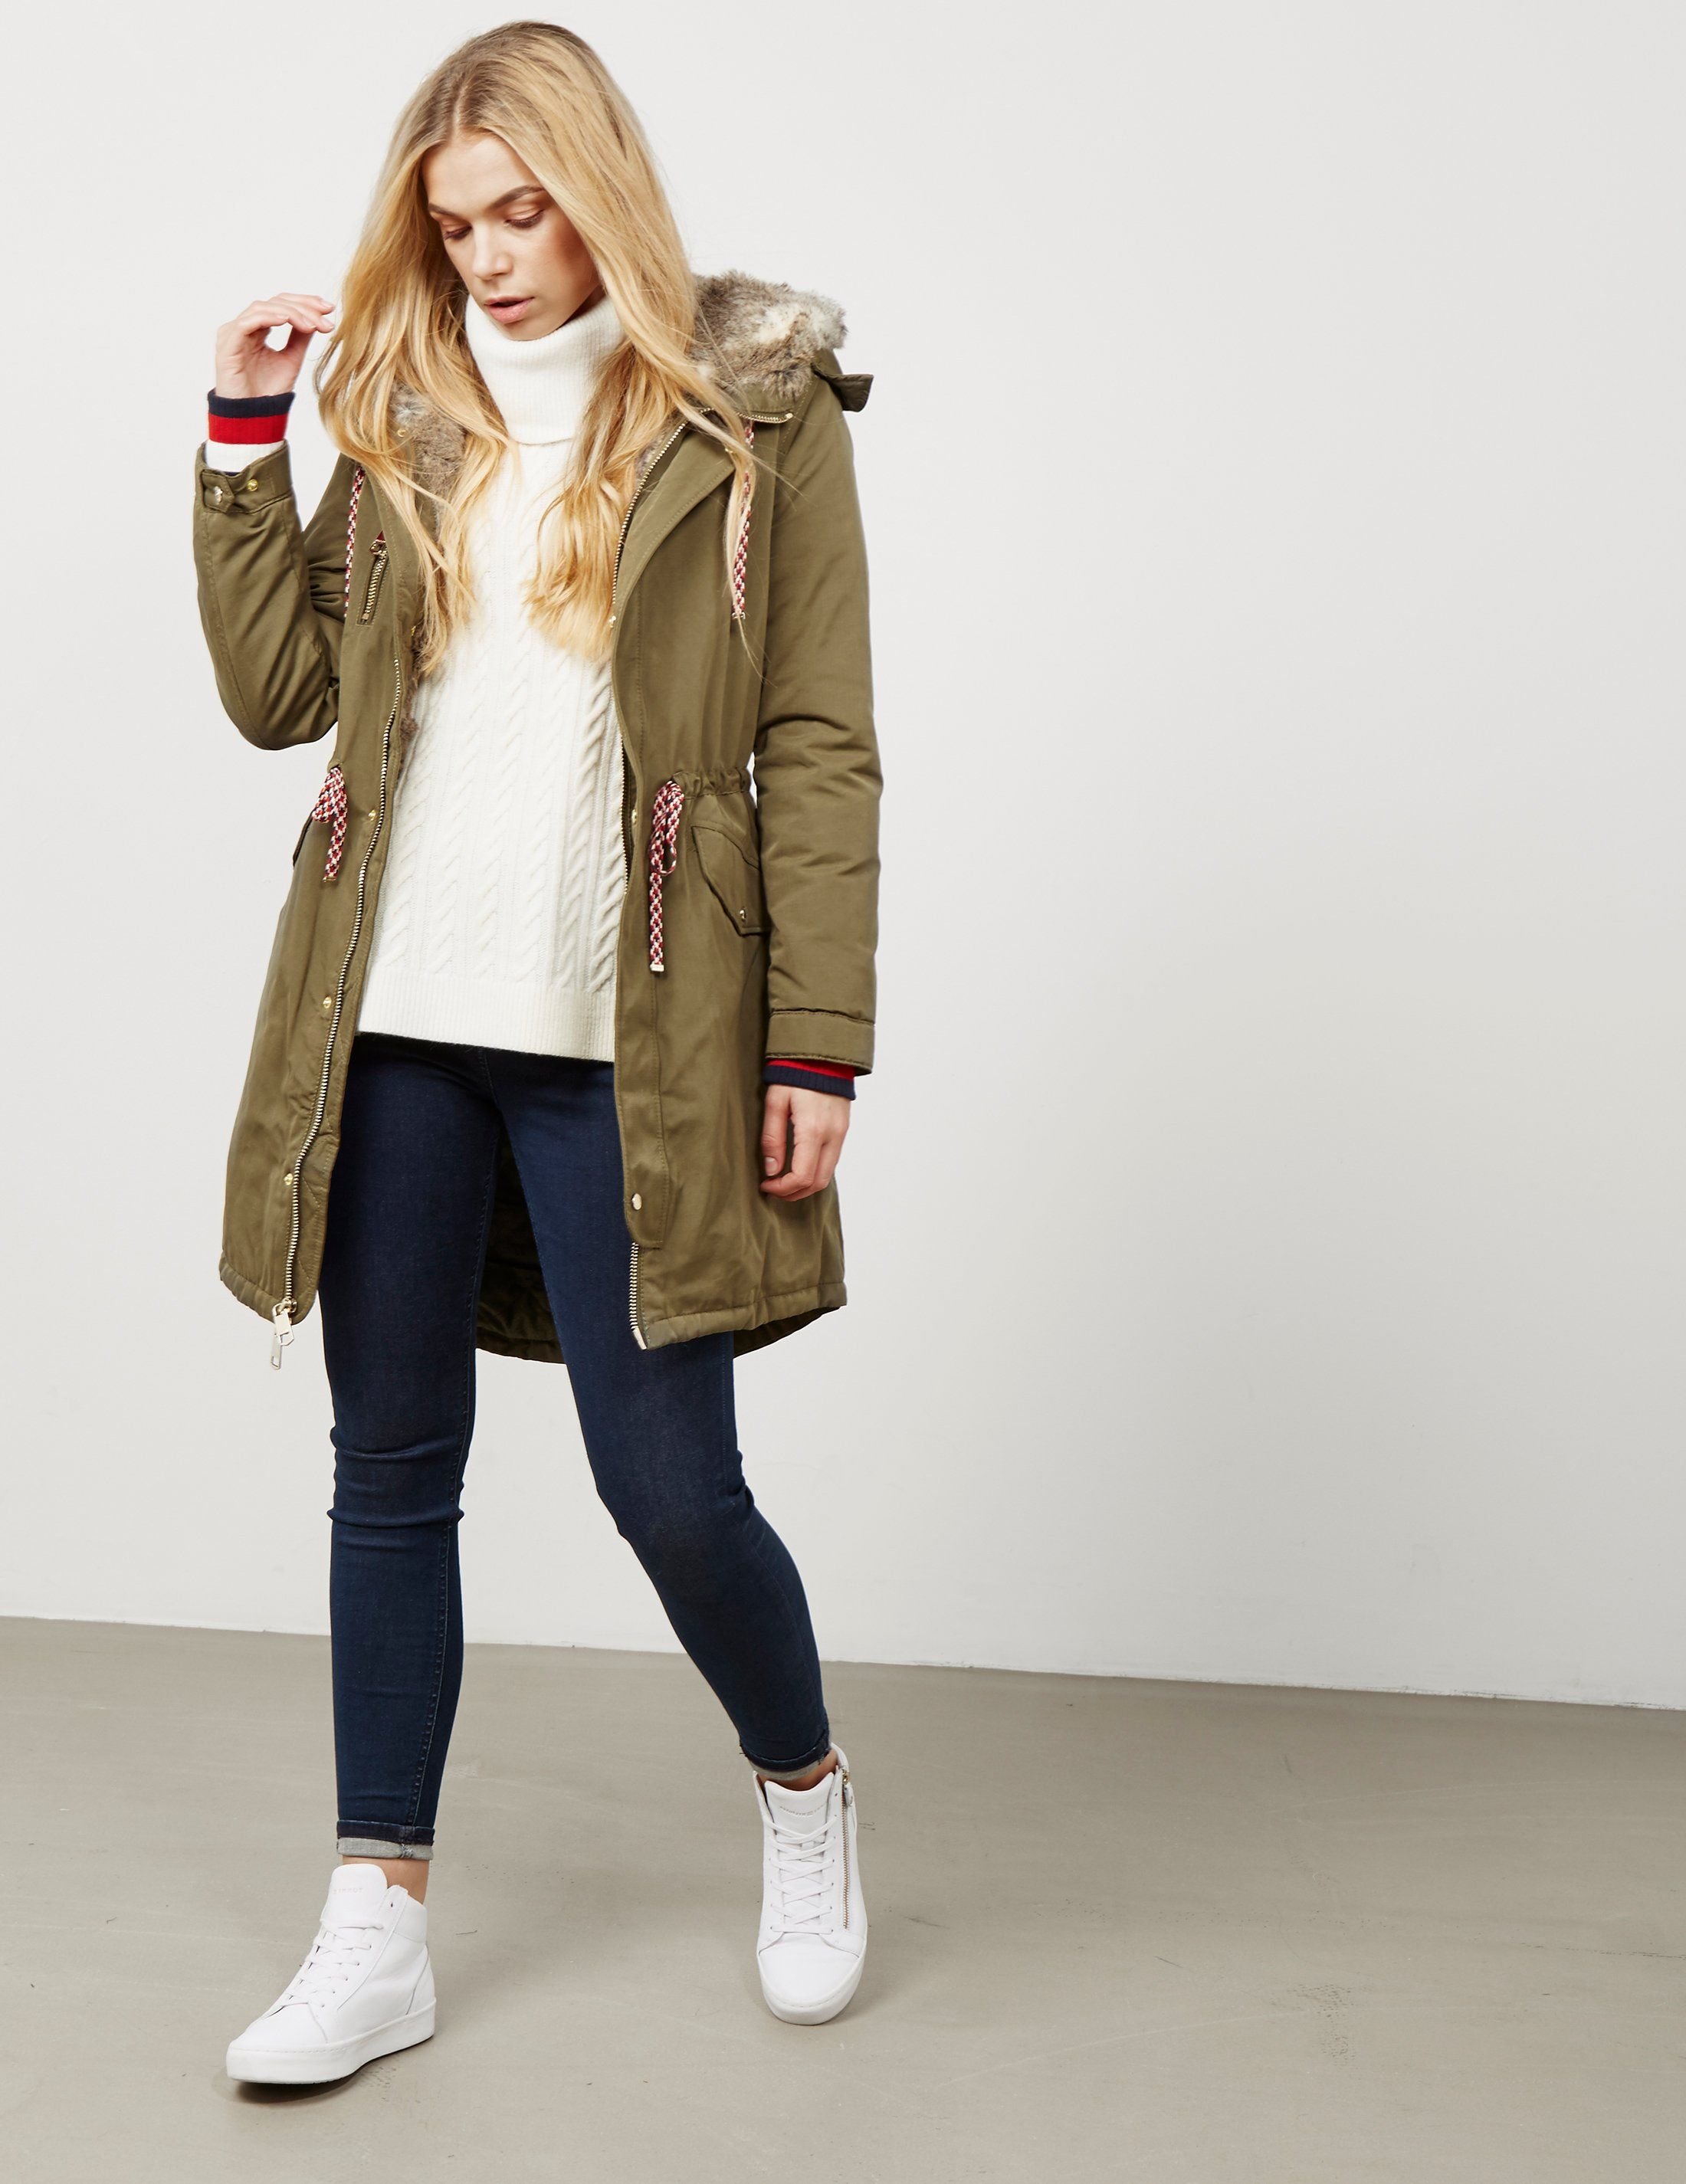 Tommy Hilfiger Cynthia Padded Parka - Online Exclusive | Tessuti